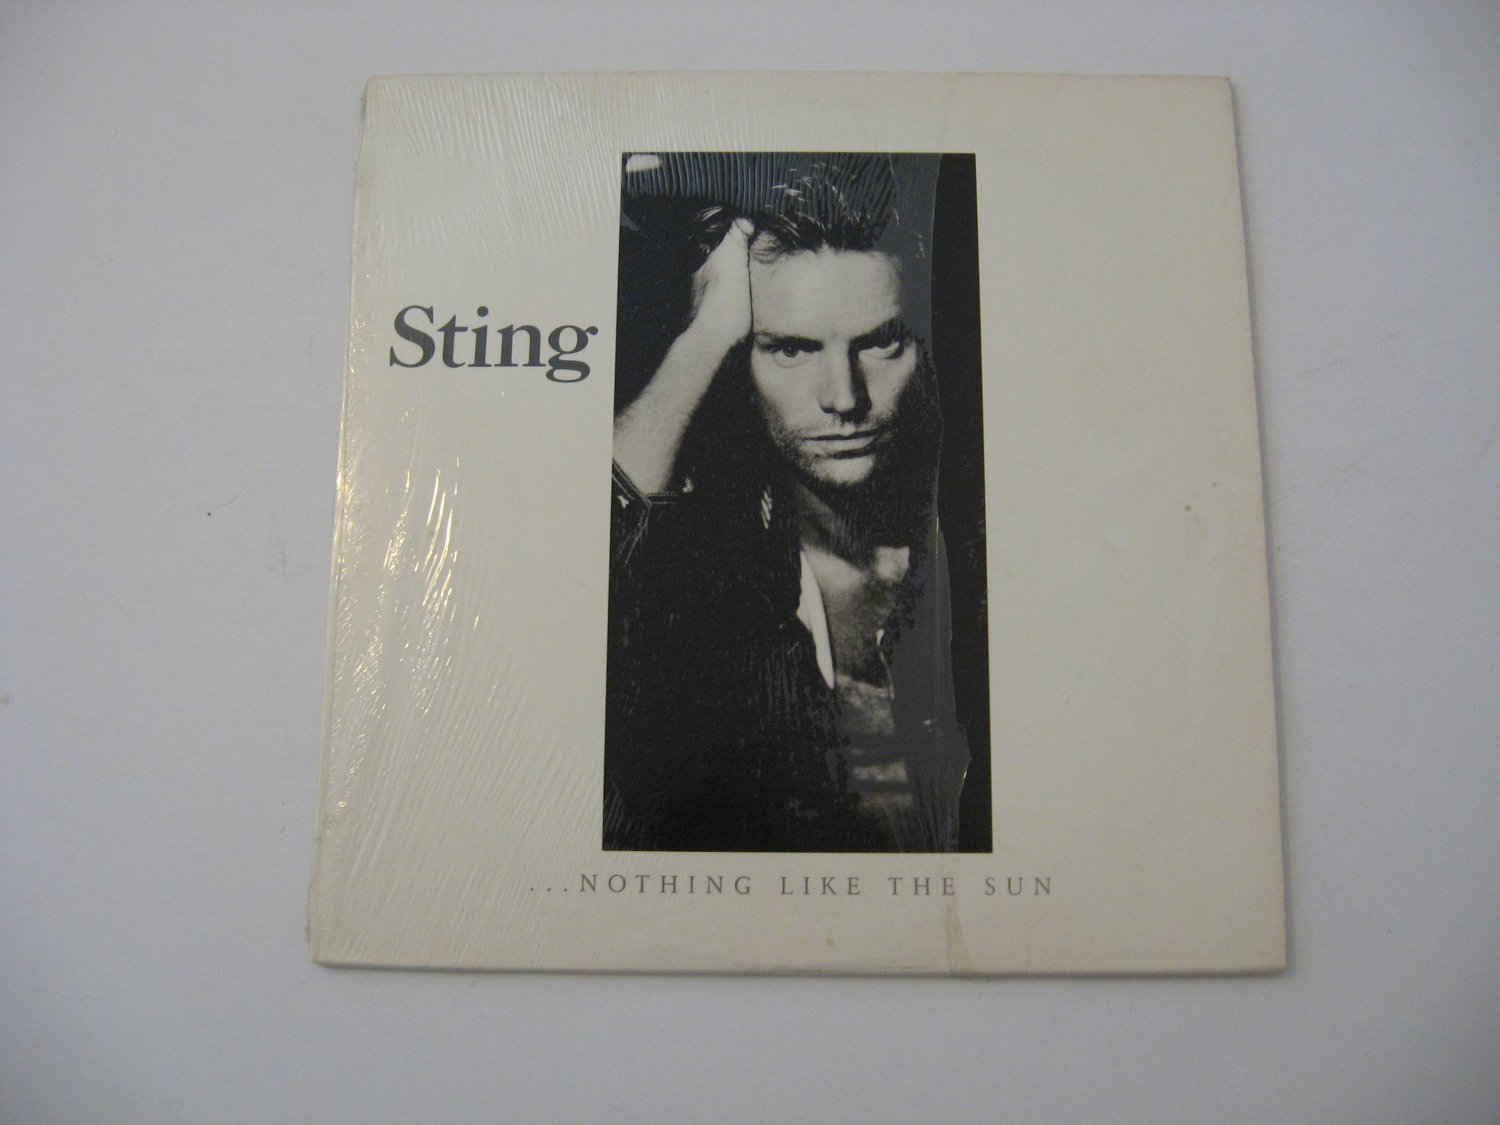 Sting - Nothing Like The Sun - Double Album Set! - Circa 1987